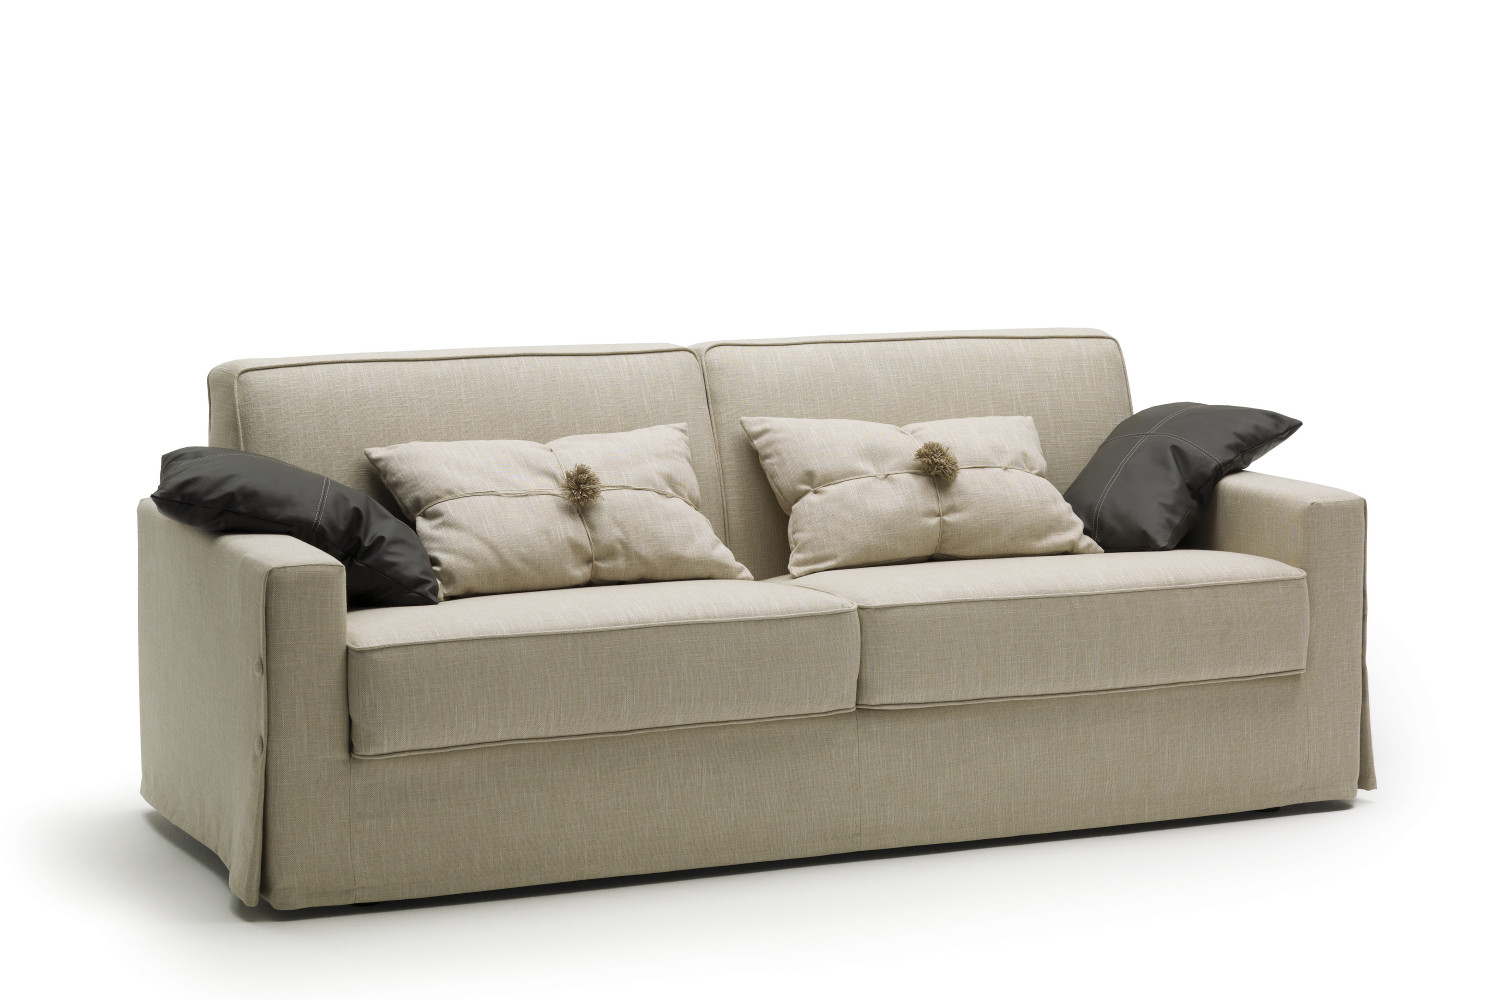 Canap convertible couchage quotidien Taylor